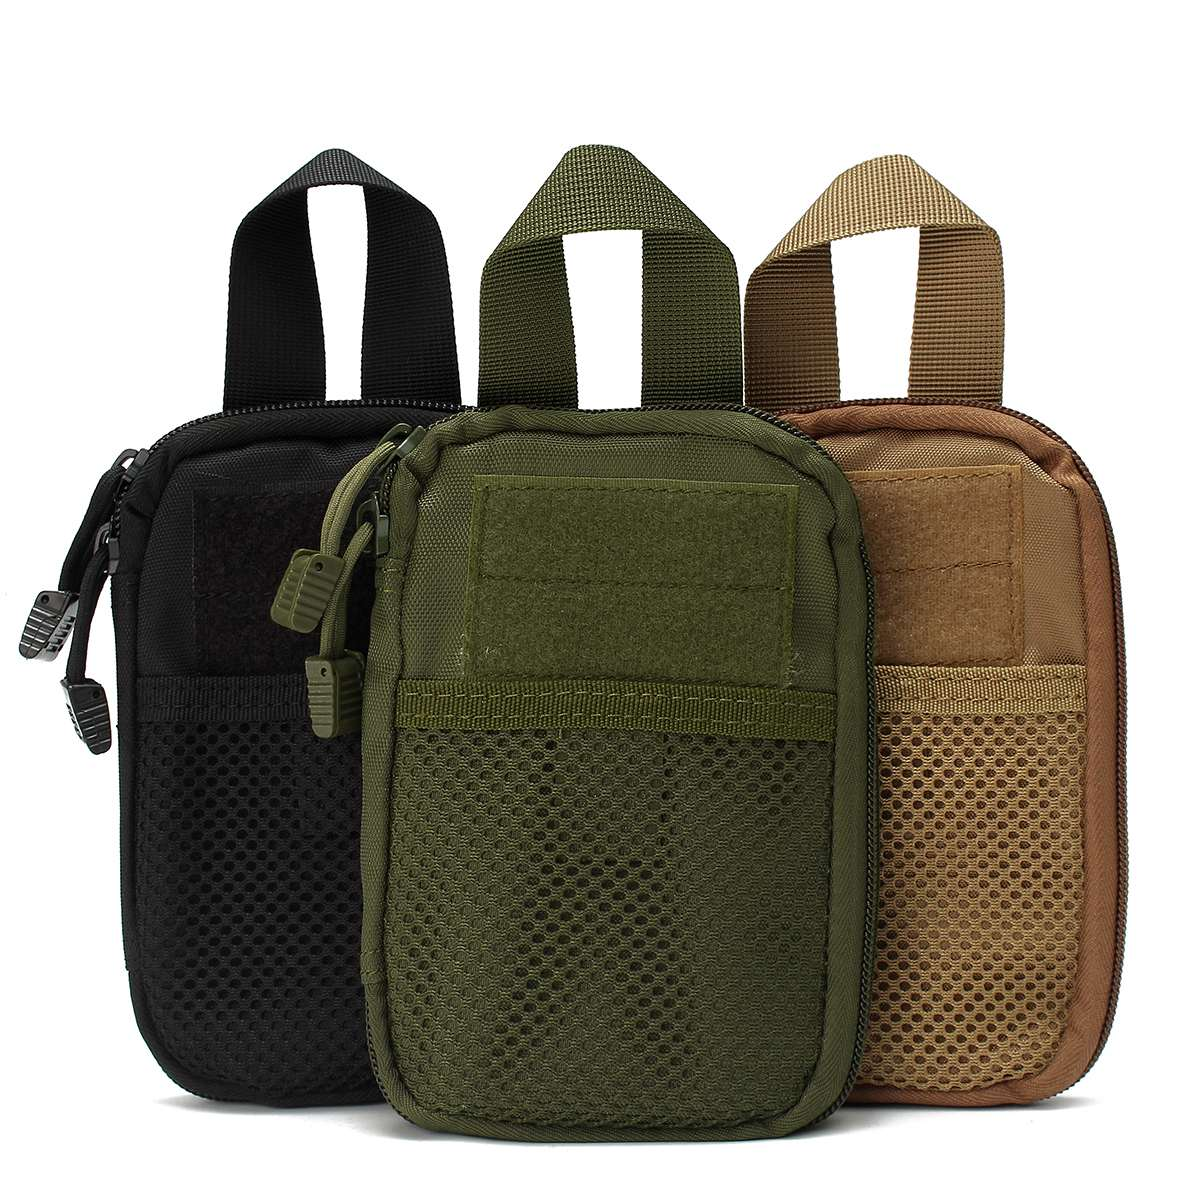 Safurance Tactical Molle Waist Pack Medical First Aid Utility Pouch Emergency Bag Security Safety Treatment Pack цена